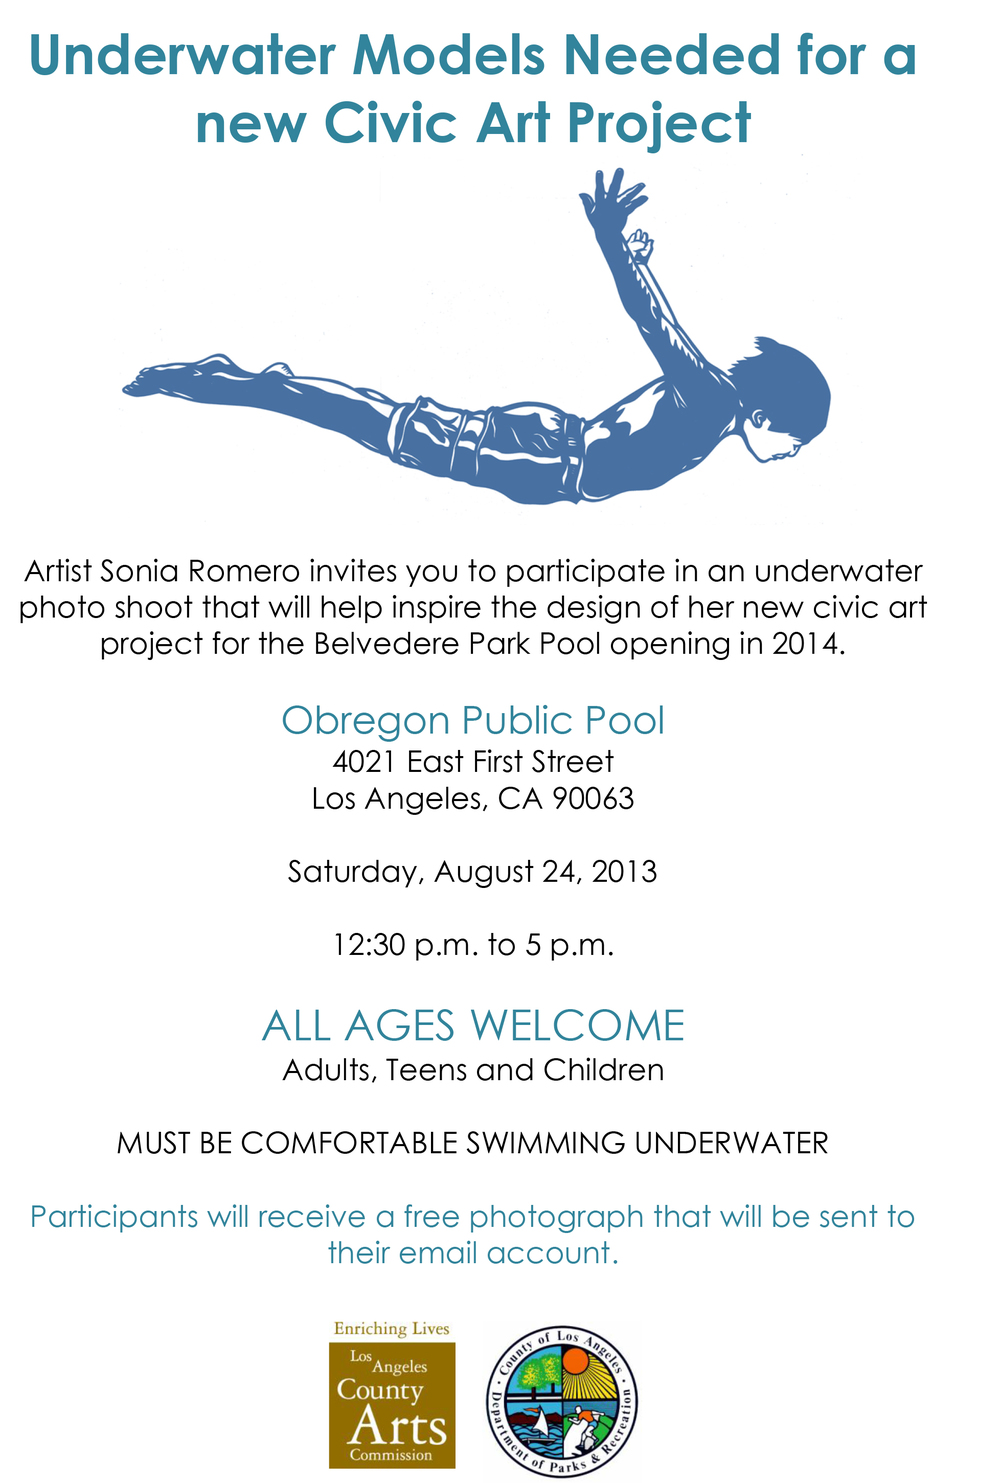 Underwater Photo Flyer 8.24.jpg